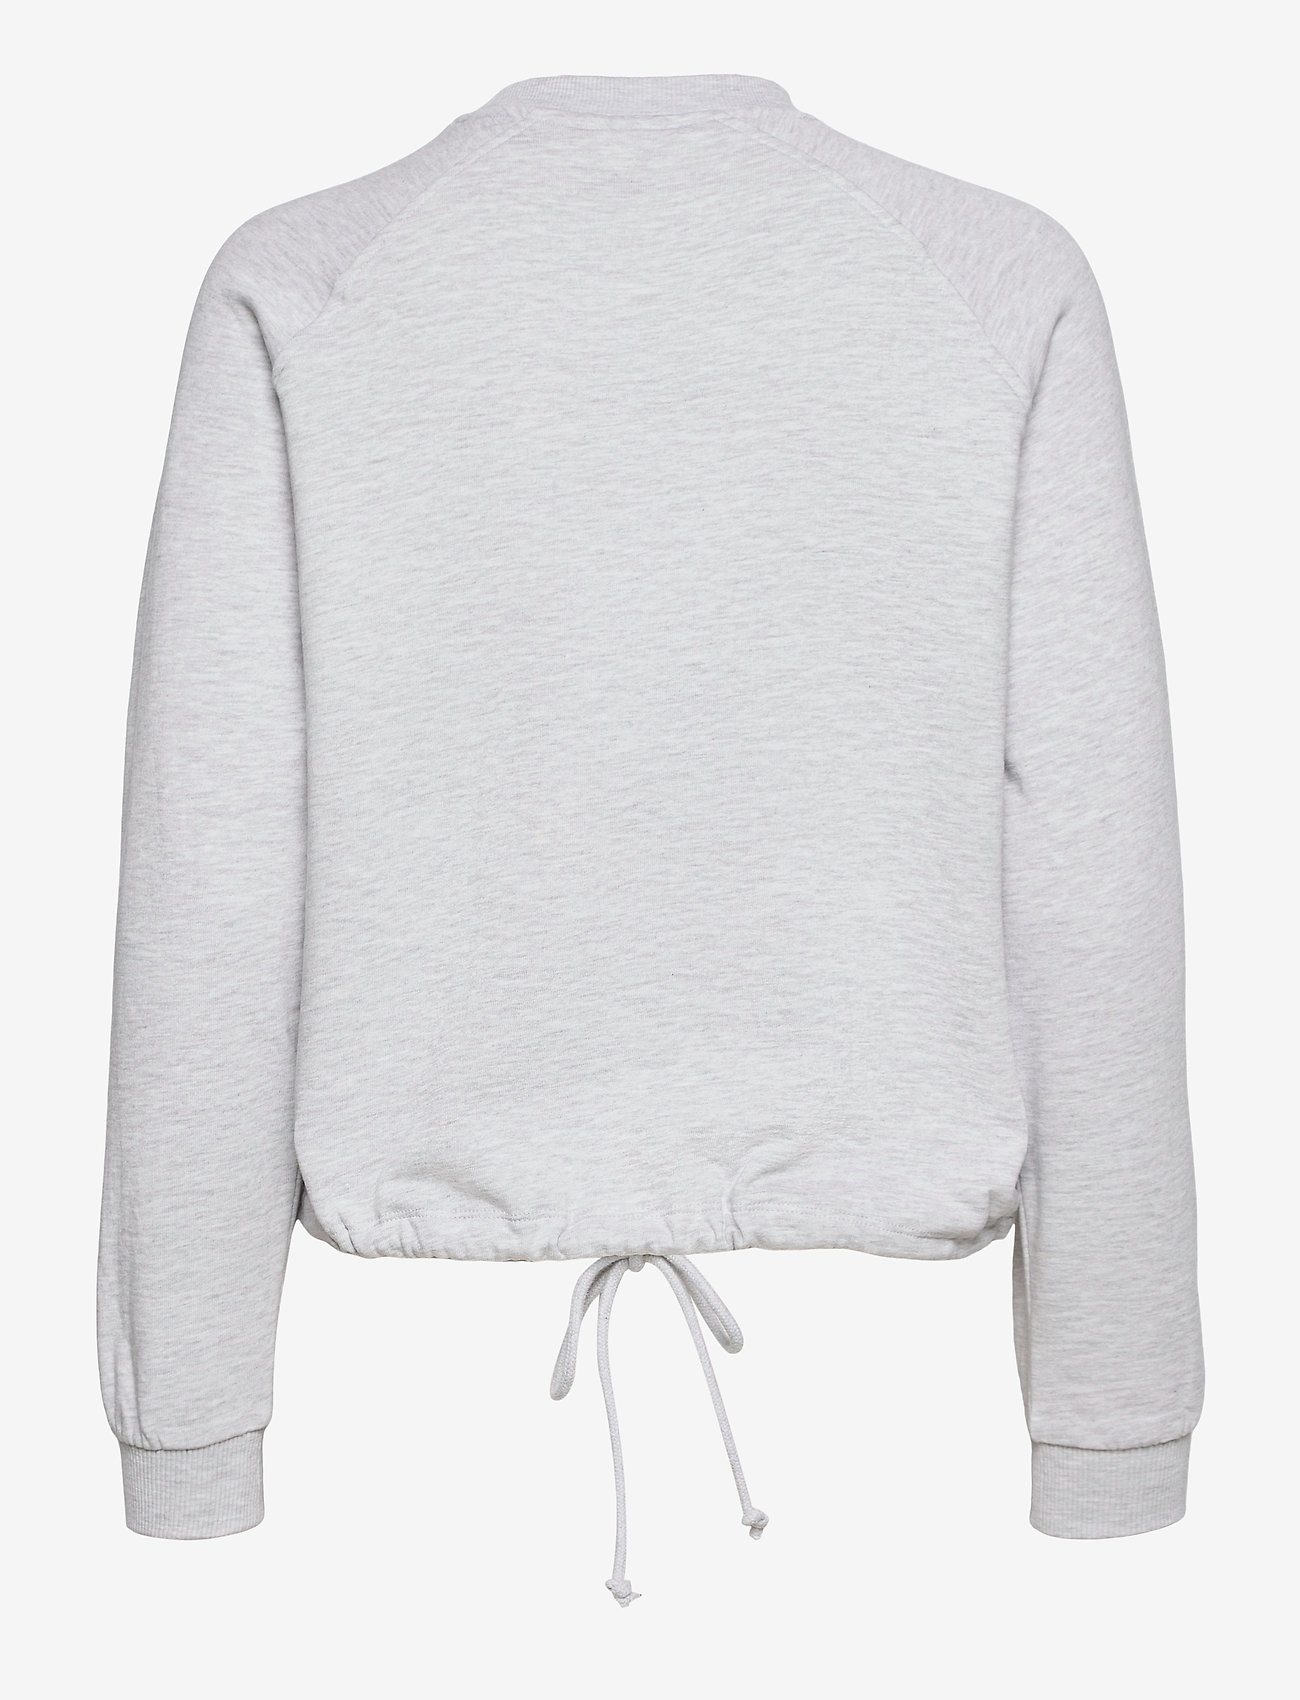 Vero Moda - VMKIRSA LS CREW NECK VMA - sweatshirts & hoodies - light grey melange - 1